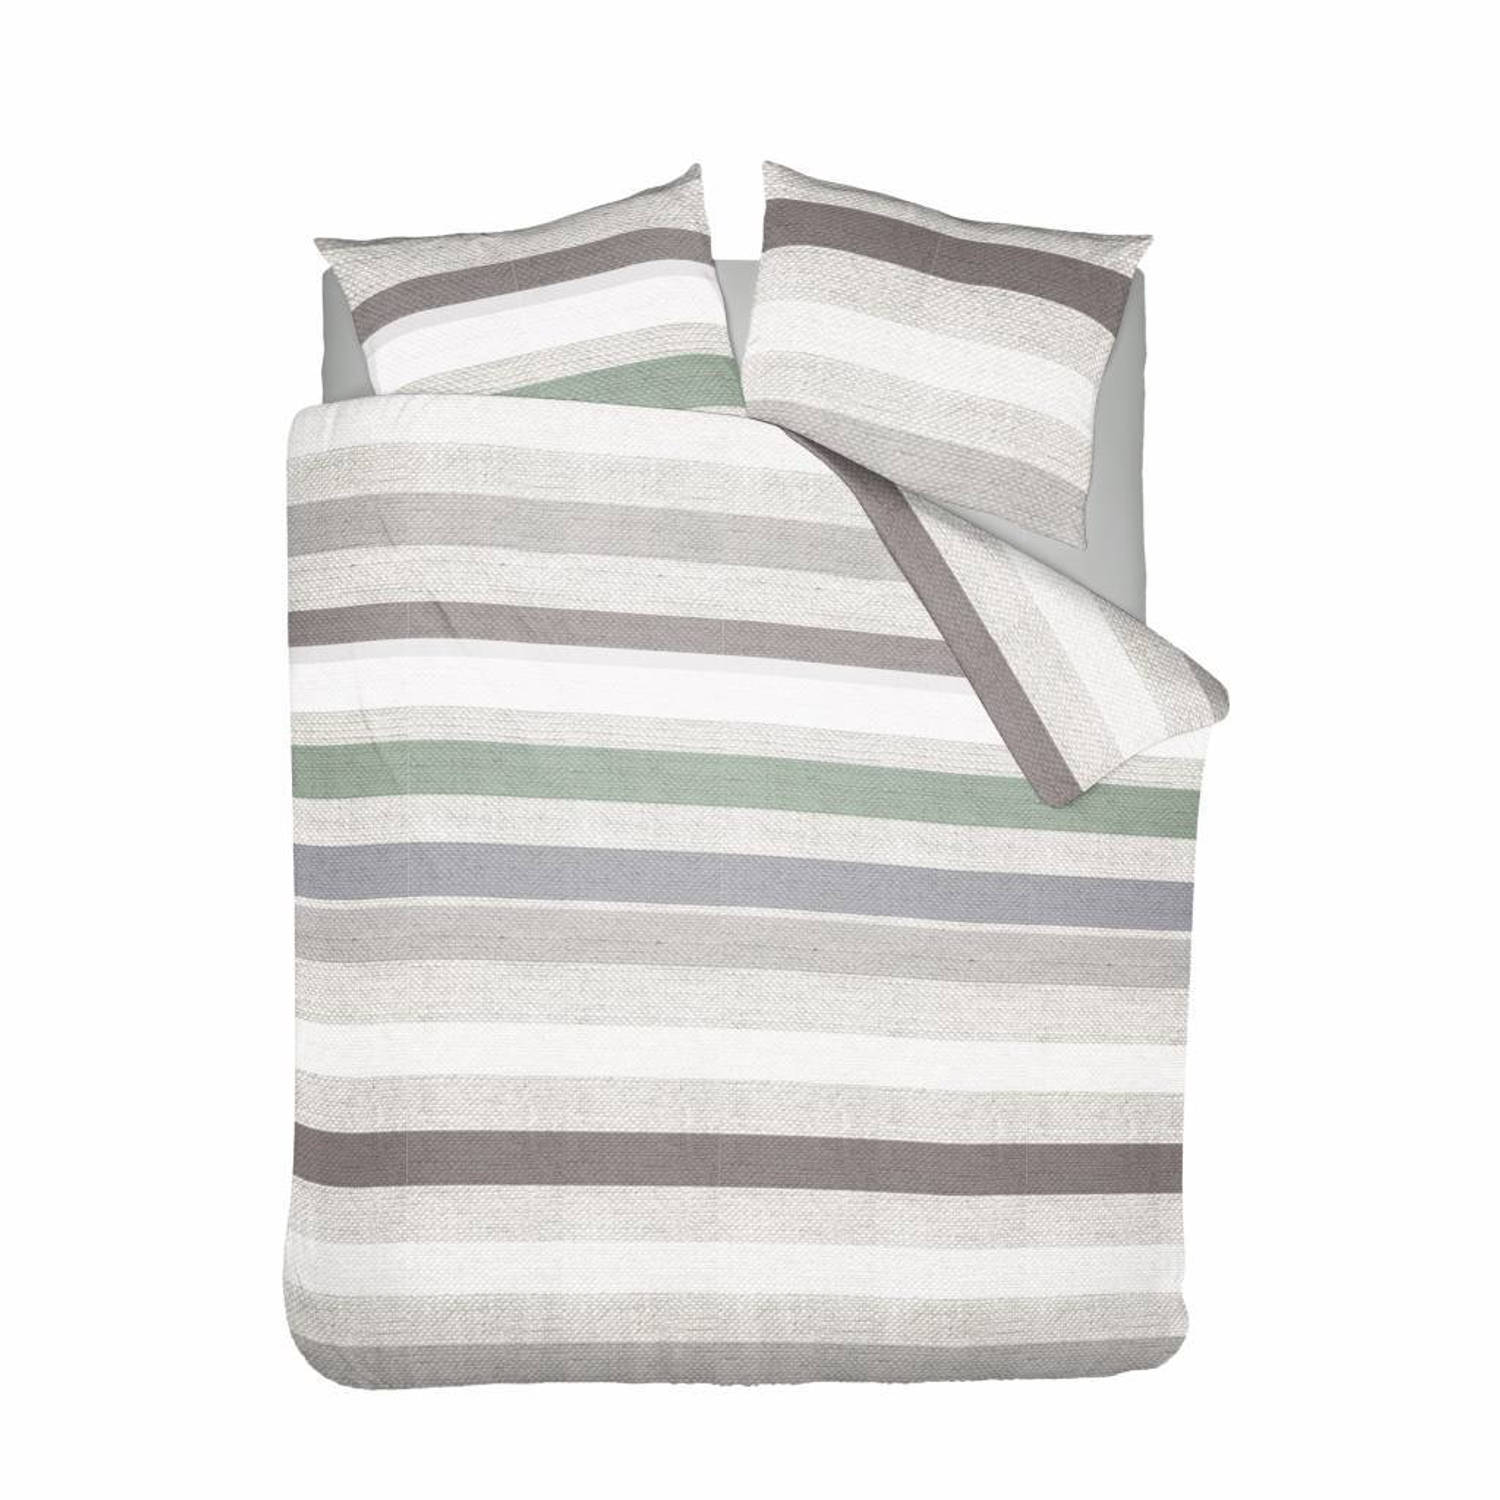 Nightlife Dekbedovertrek Pastel Stripe Groen - 240x220/220